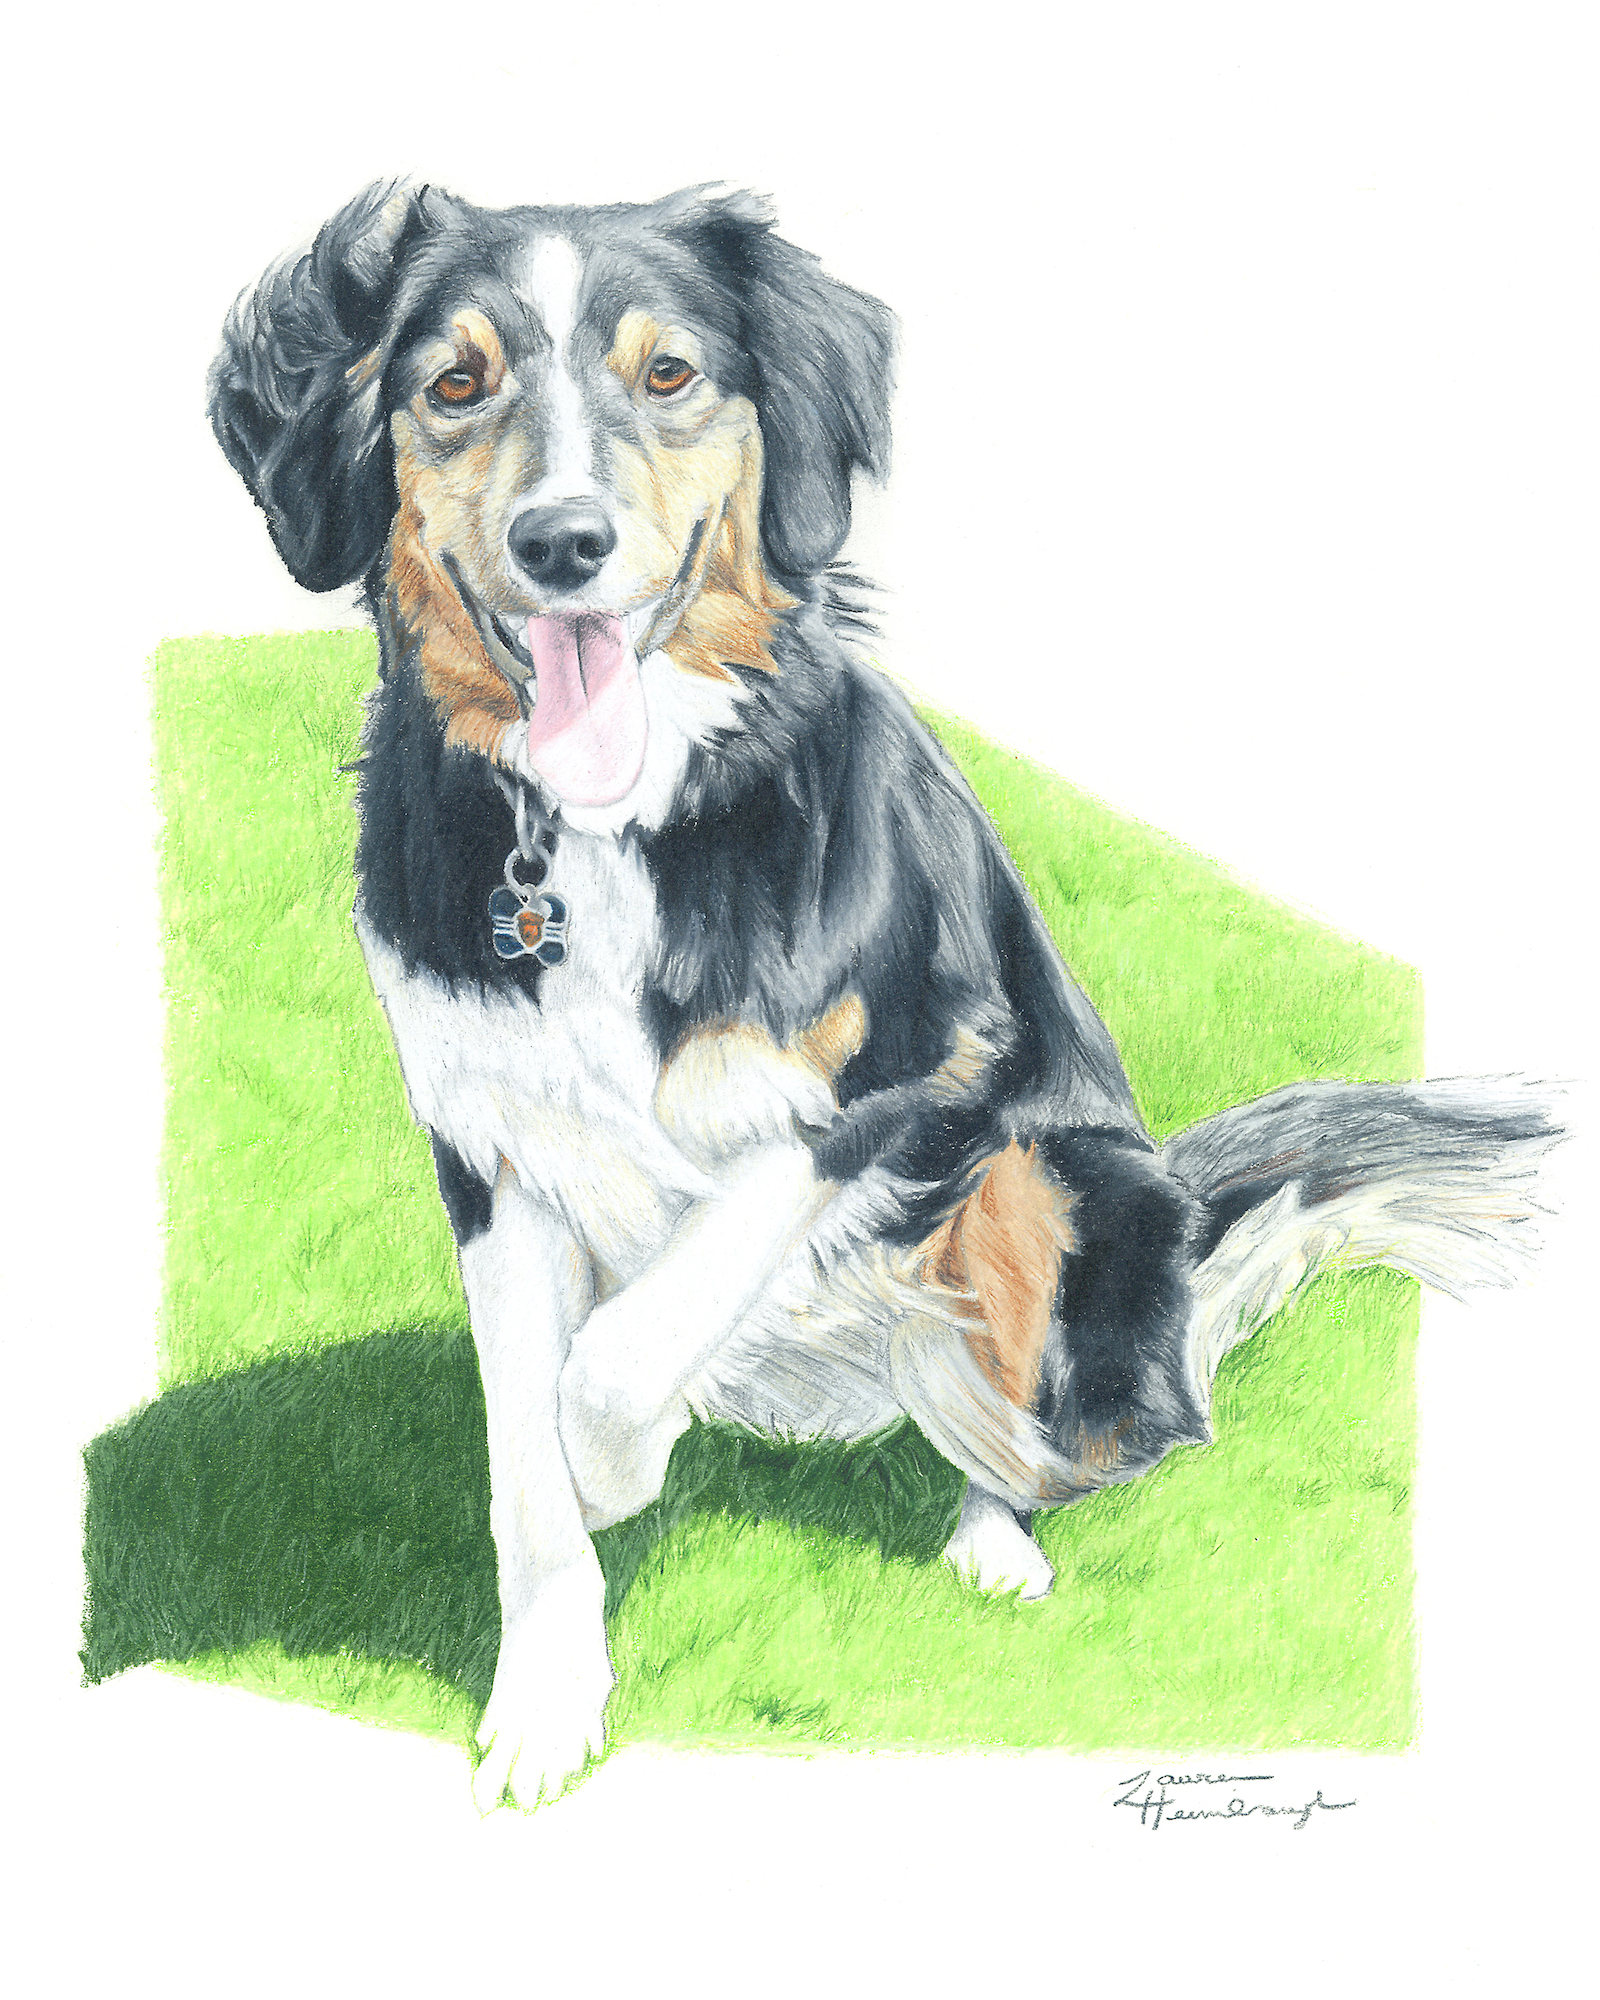 Sherly the English Shepherd (2015)